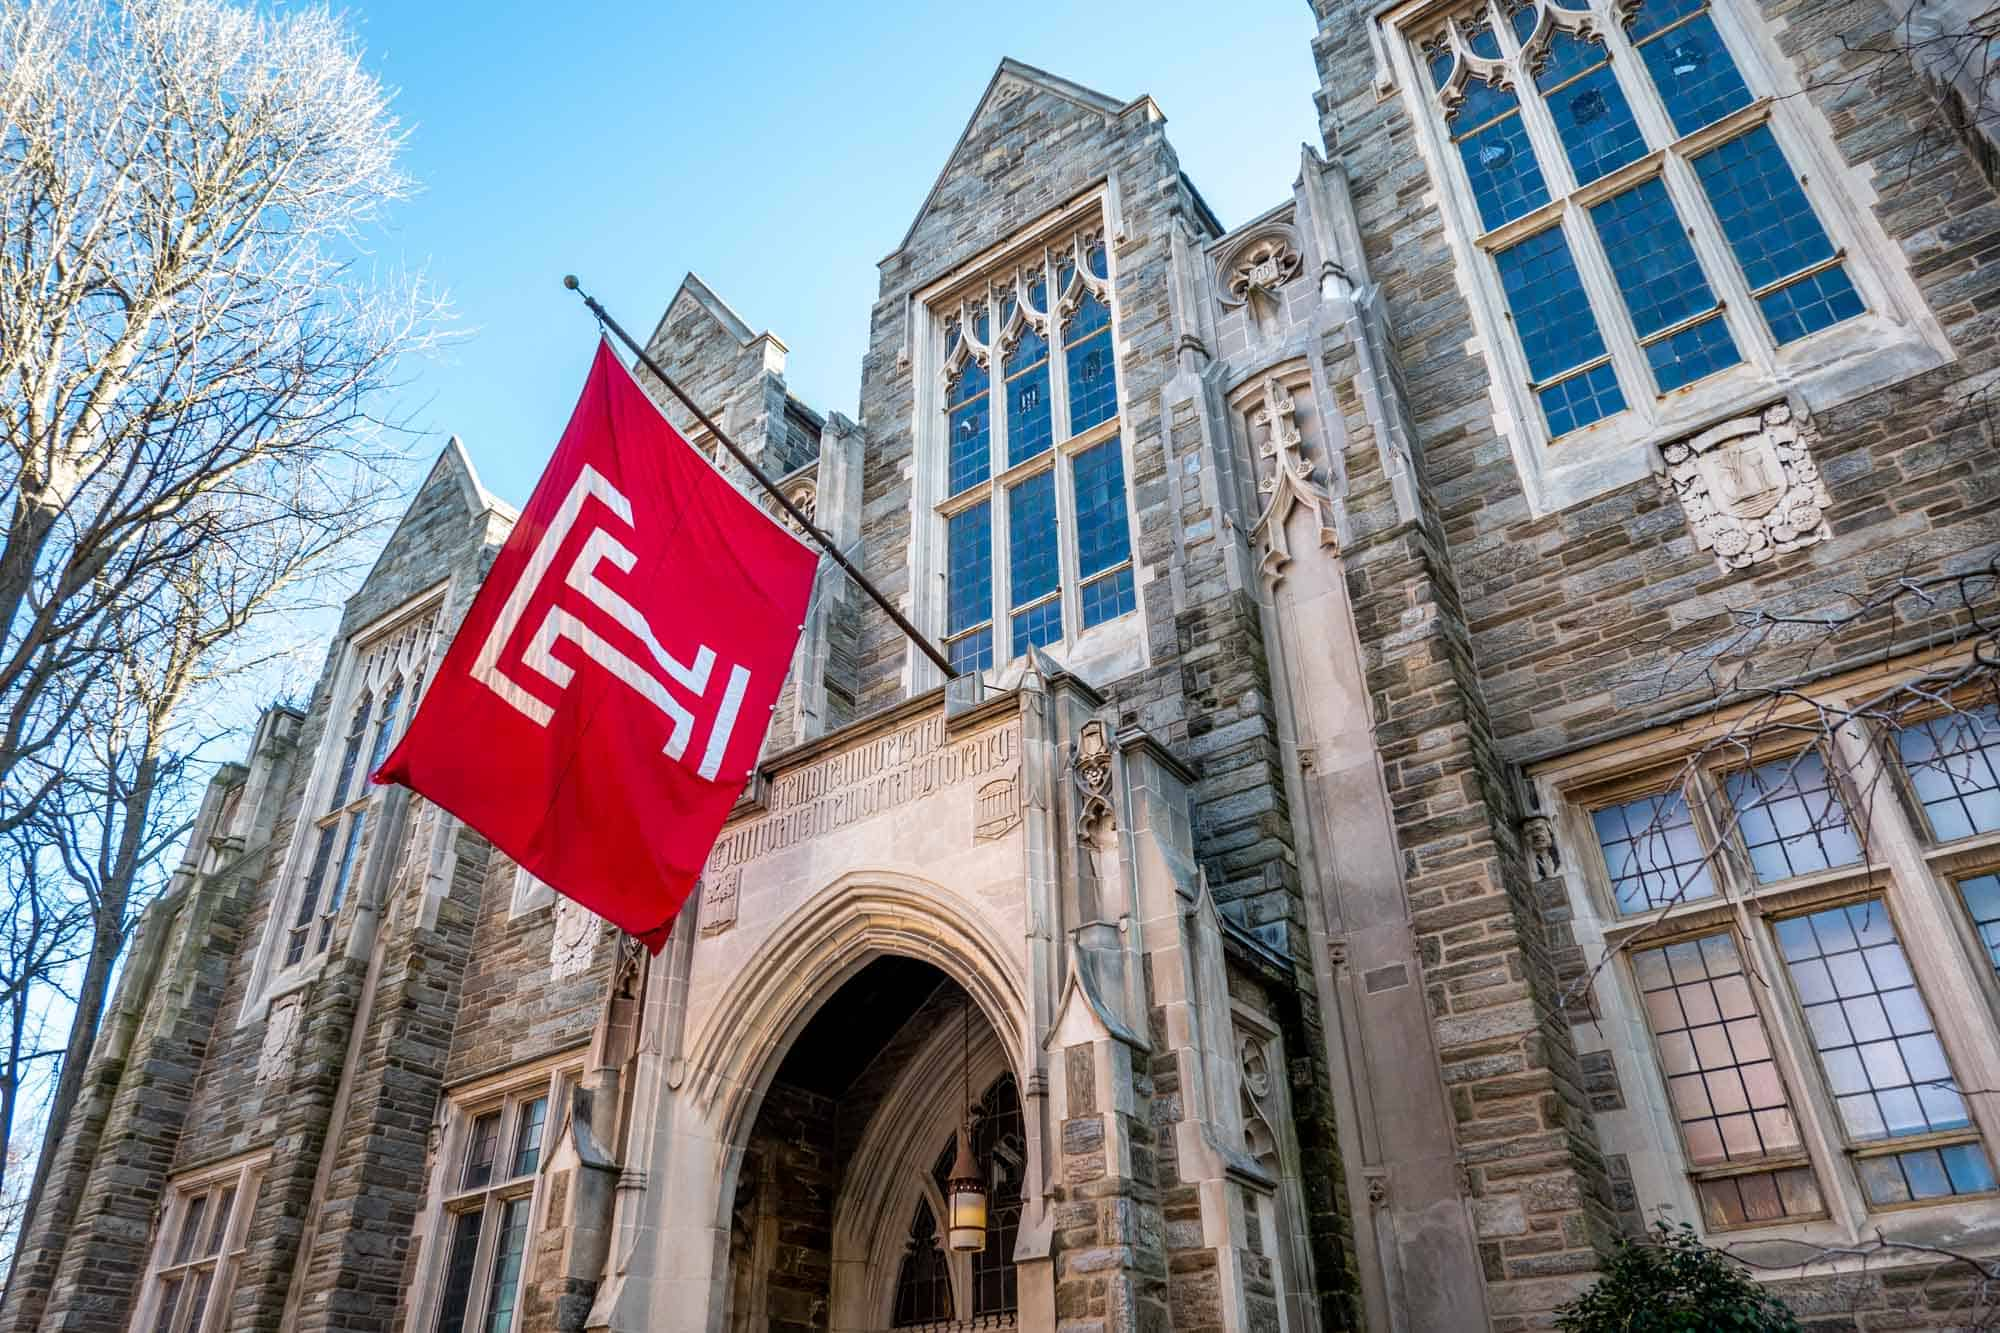 Red Temple University flag in front of building